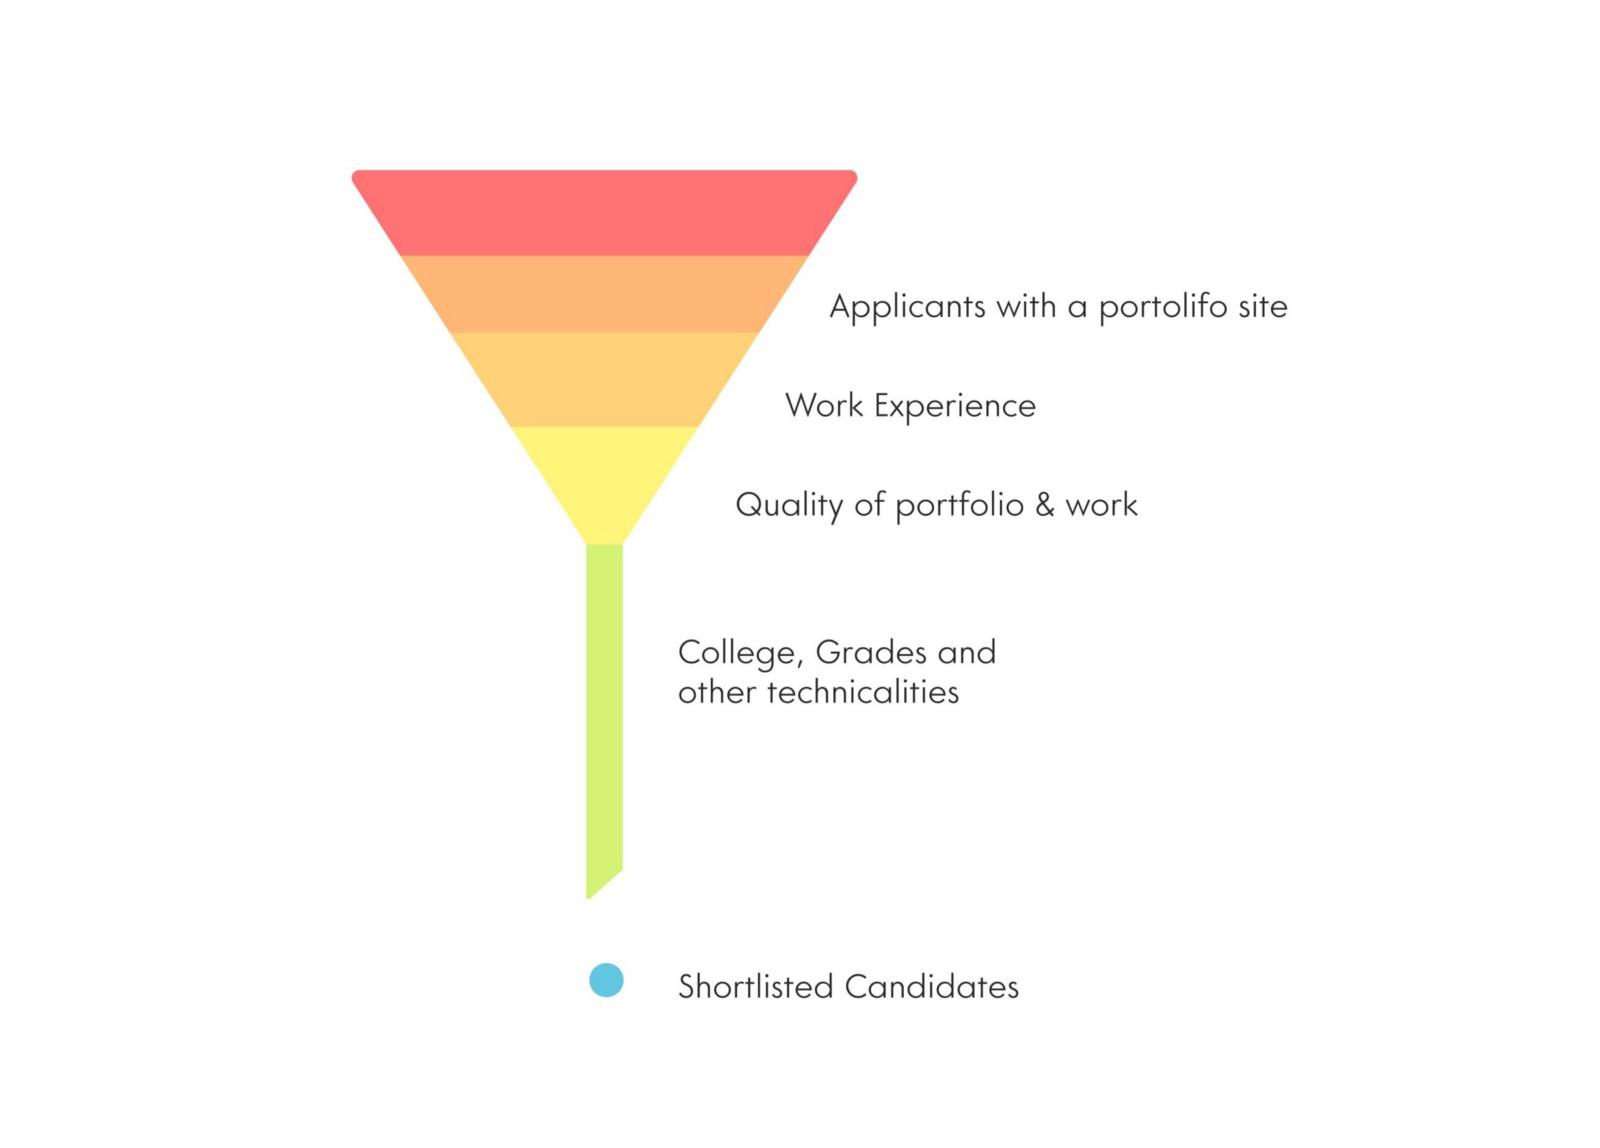 5 Things I Learnt by Looking at 300 Resumes for a Design Internship